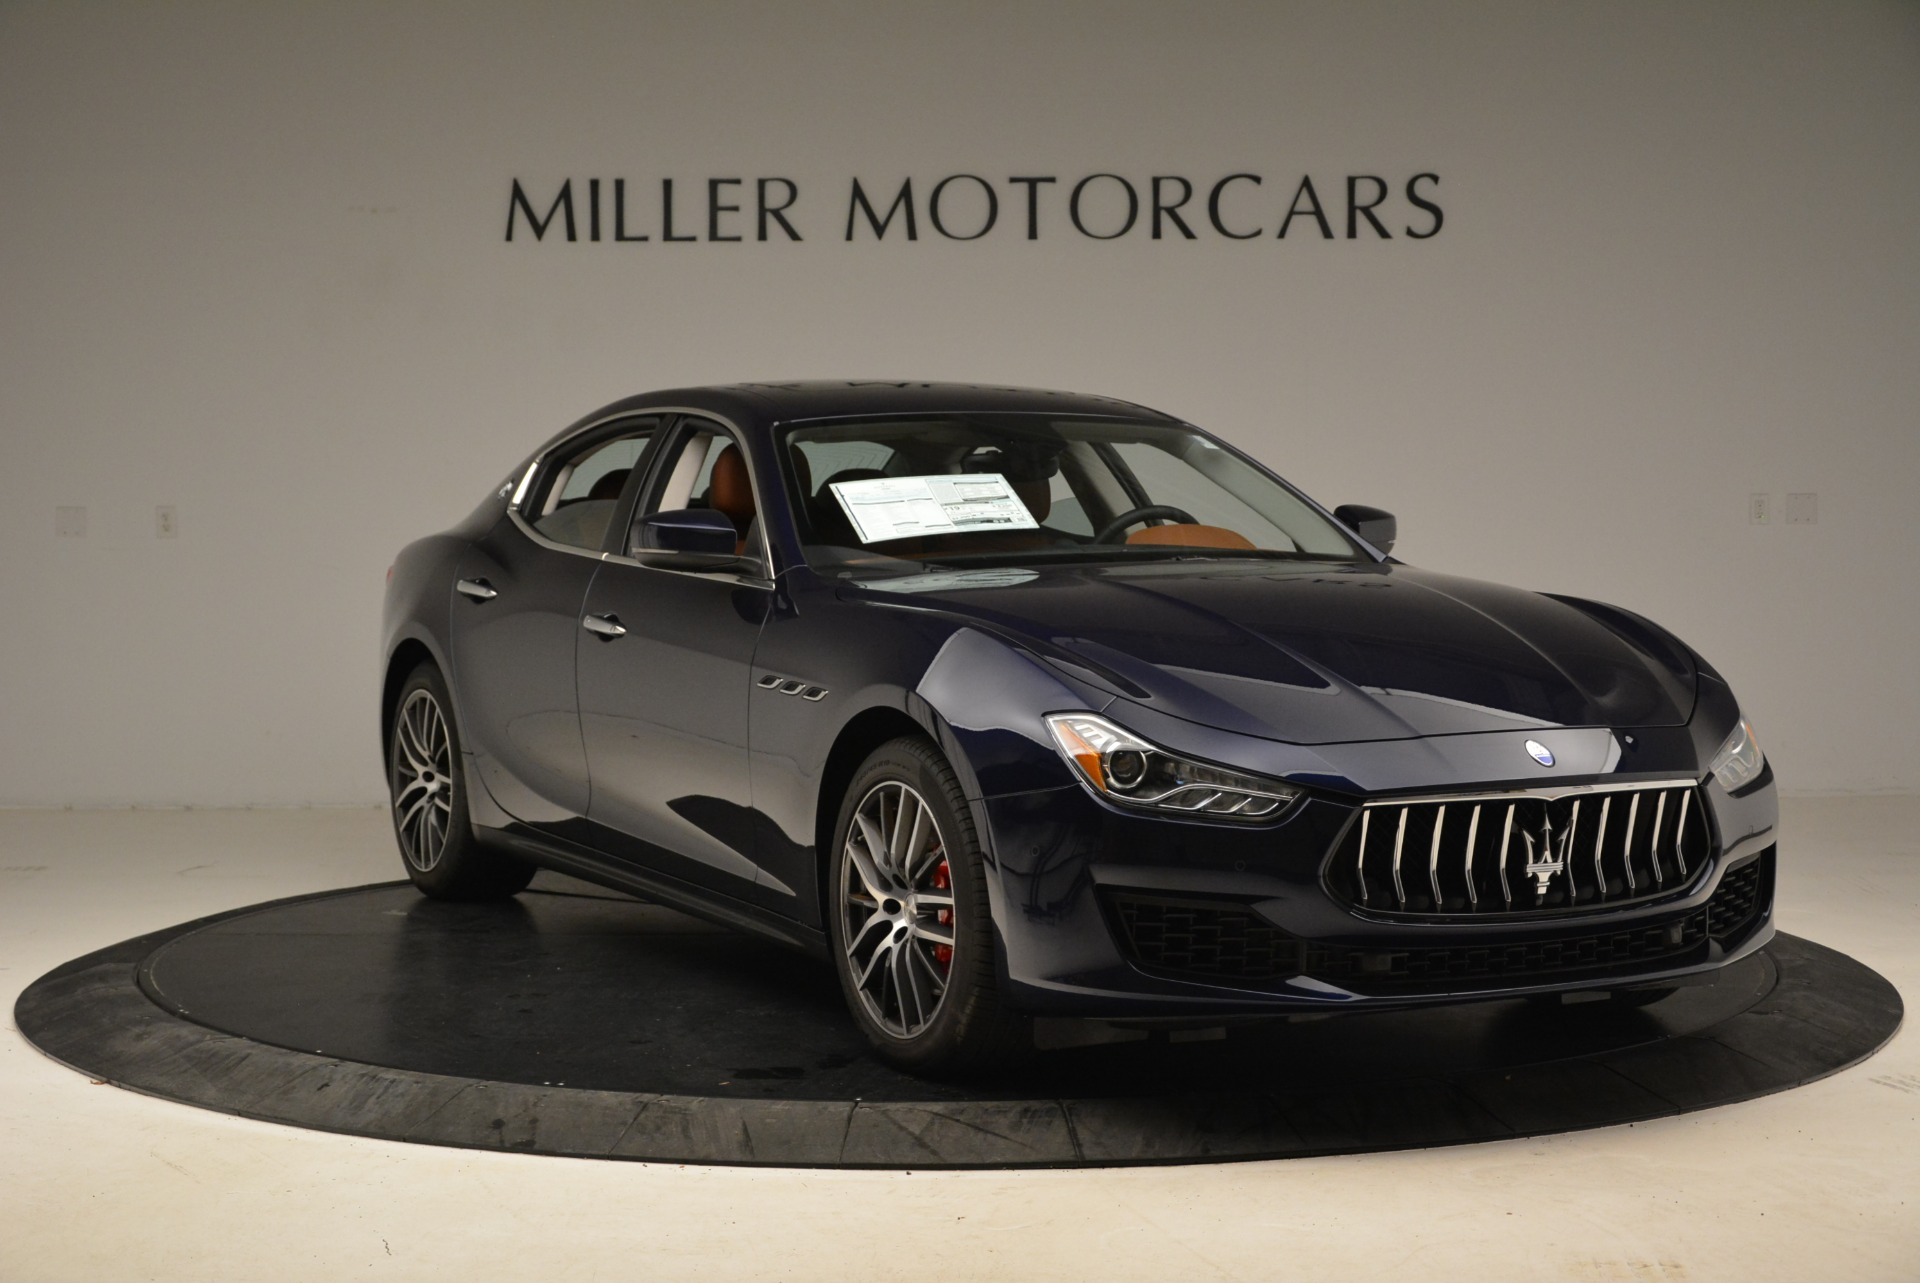 New 2019 Maserati Ghibli S Q4 For Sale In Greenwich, CT. Alfa Romeo of Greenwich, M2275 3020_p11